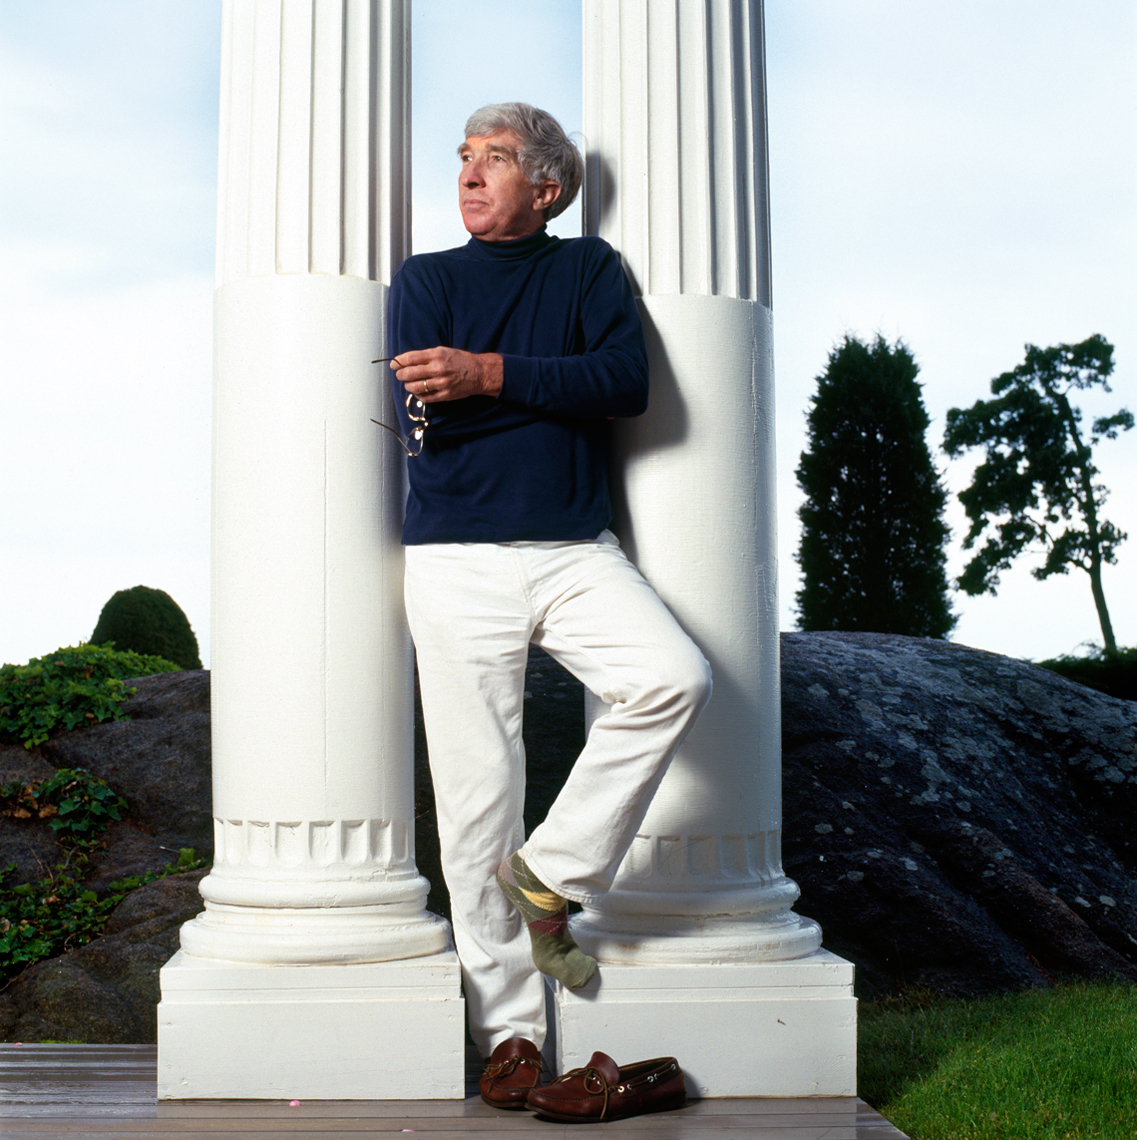 JOHN_UPDIKE_002_being_retouched.jpg